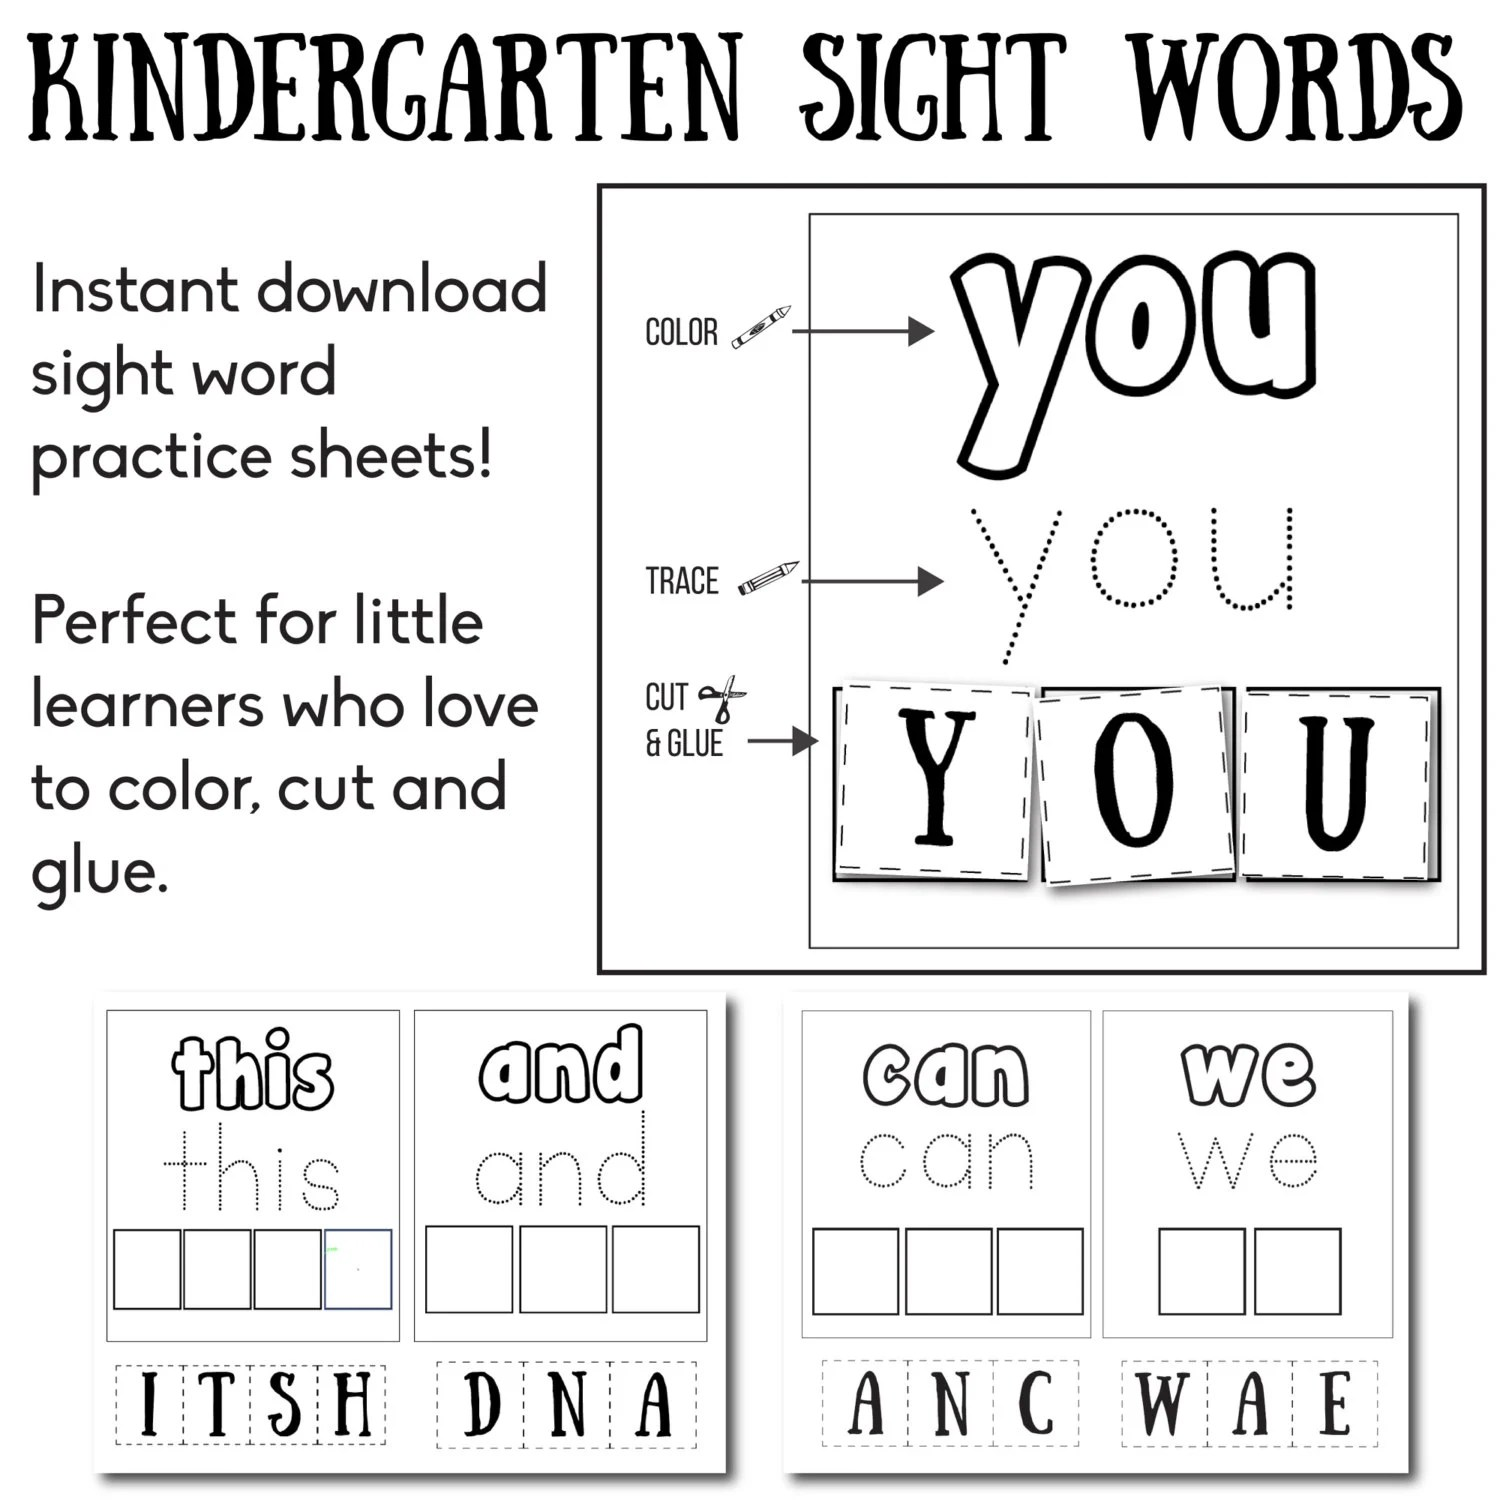 Kindergarten Sight Words Educational Worksheet